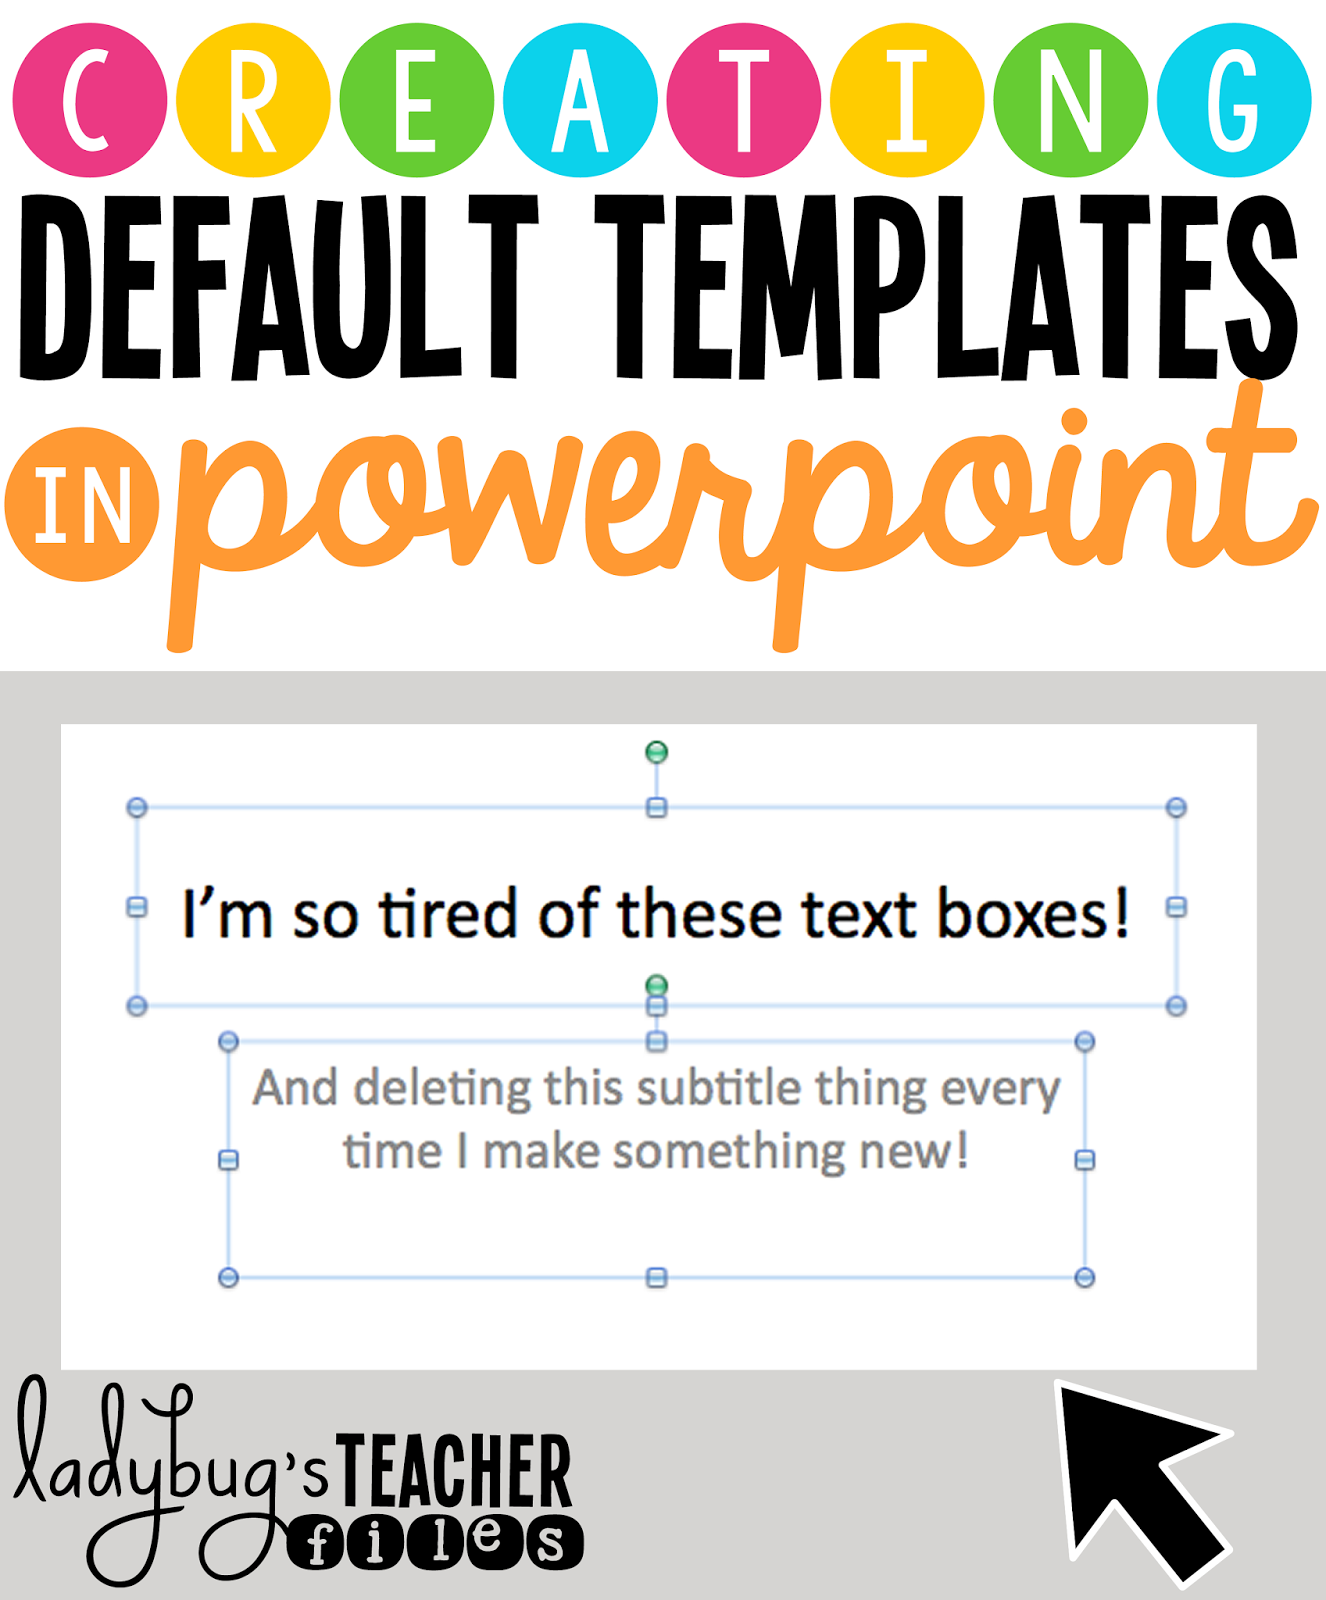 creating default templates in powerpoint ladybugs